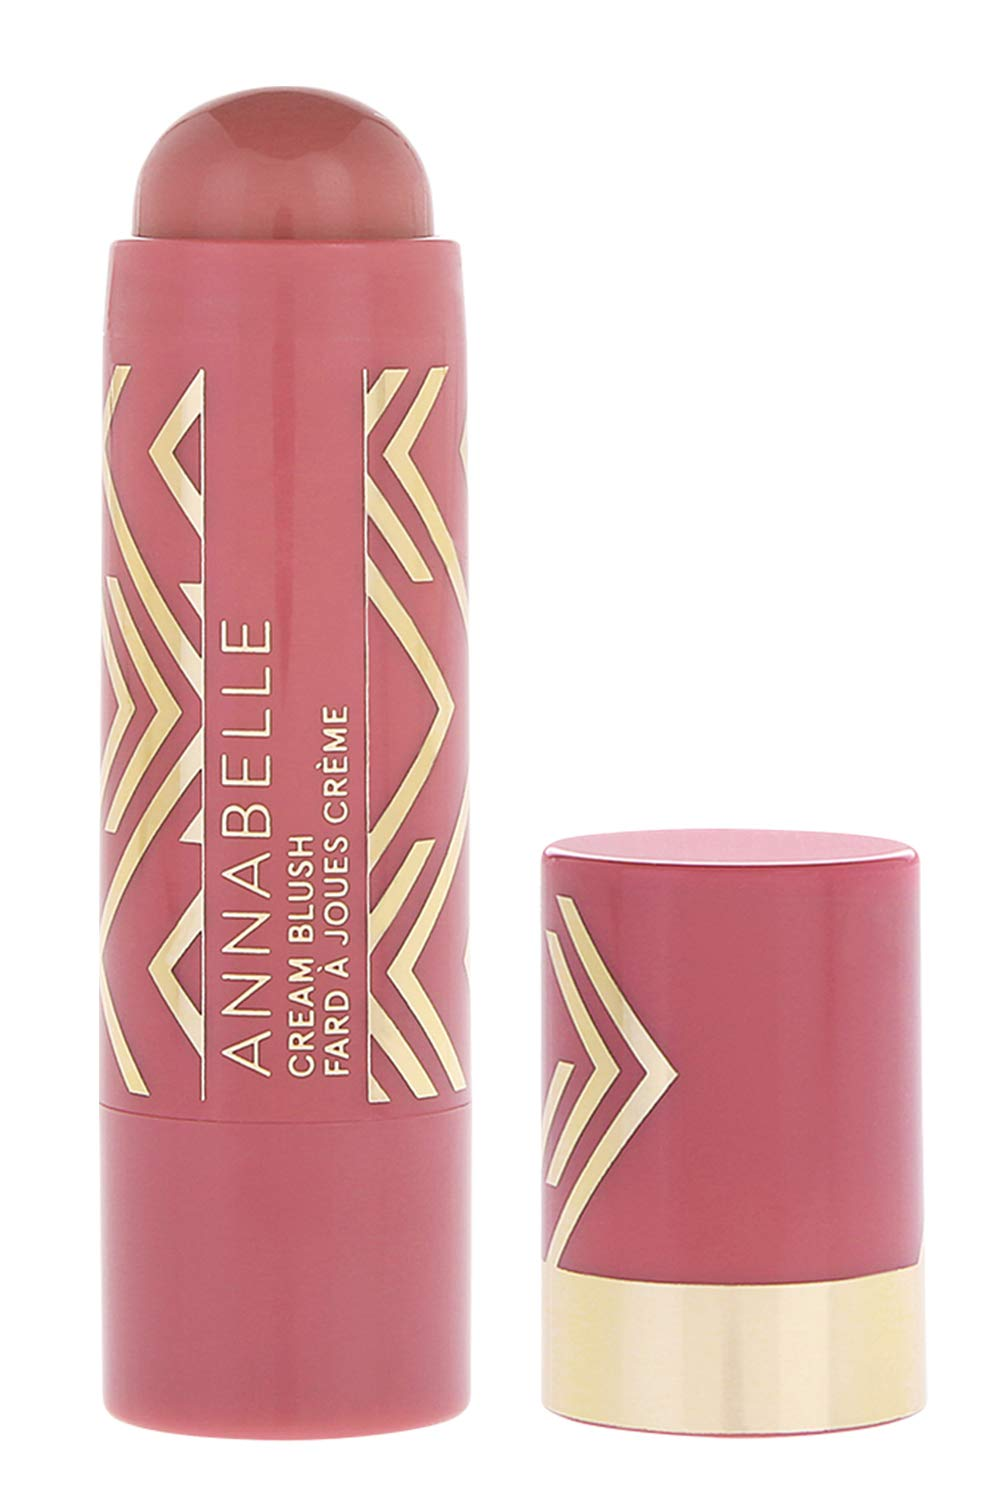 Annabelle Perfect Cream Blush, Light Berry, 6.2 g Groupe Marcelle Inc.